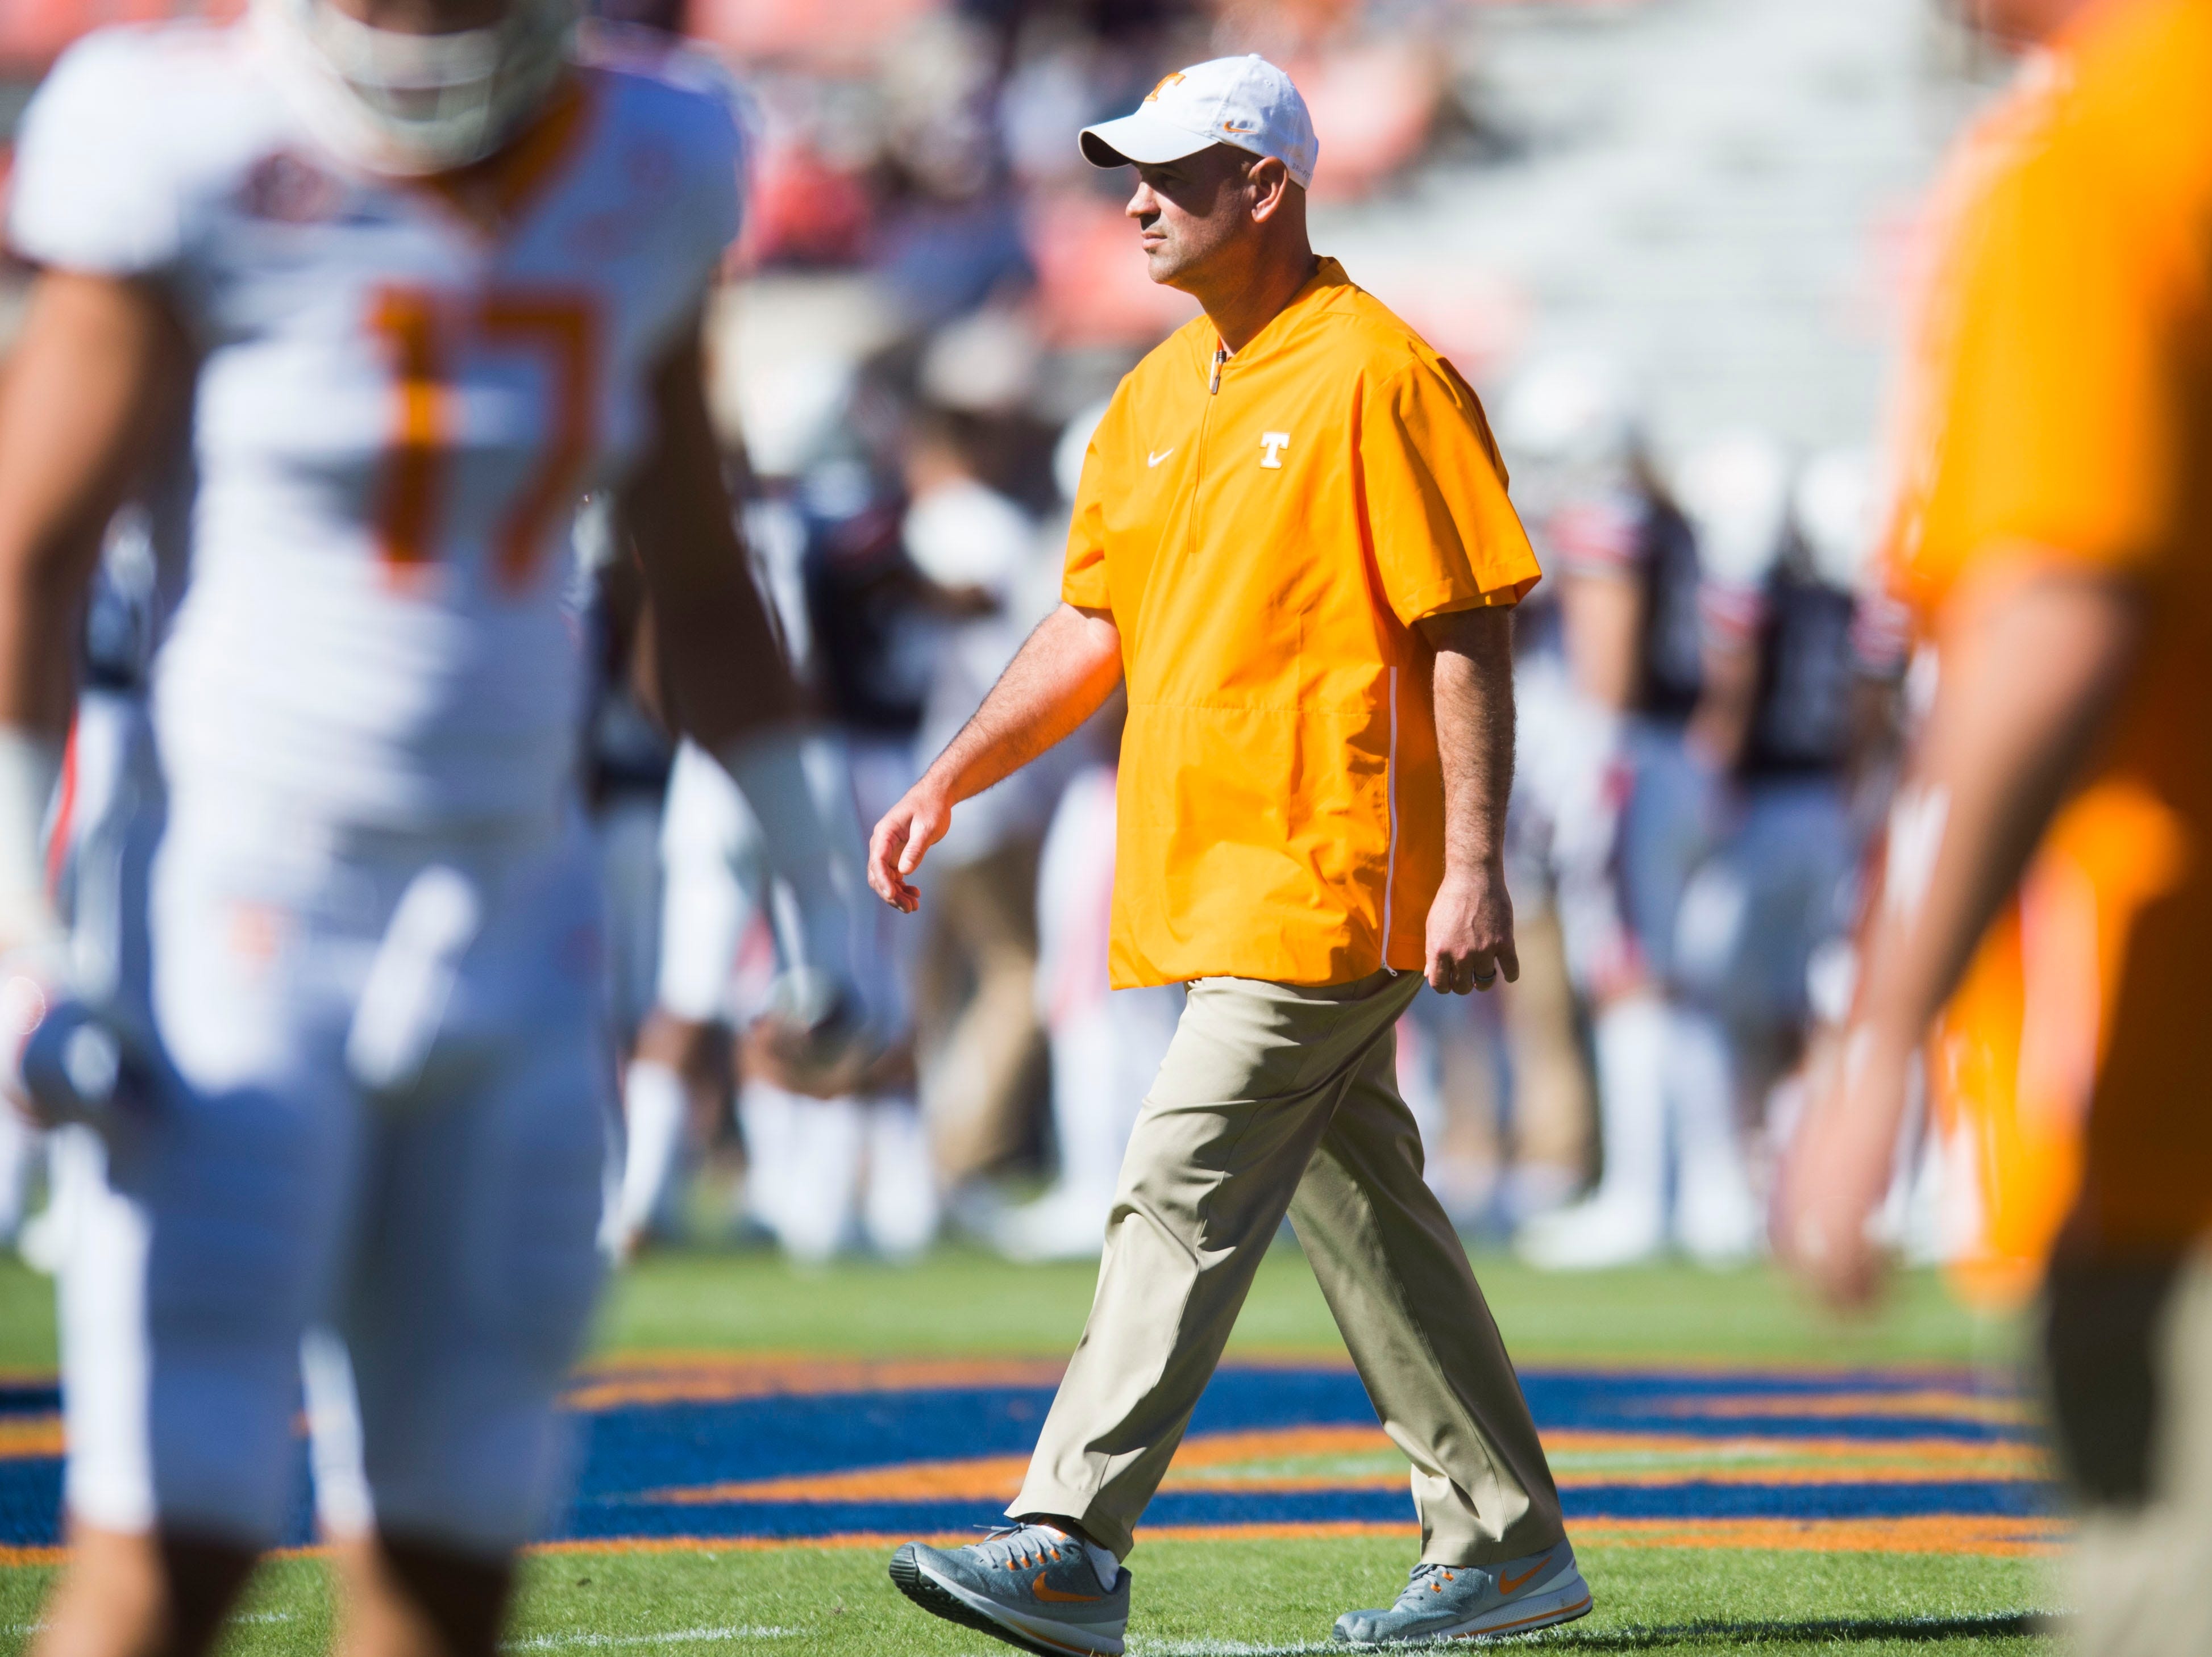 Tennessee Head Coach Jeremy Pruitt walks on the field before a game between Tennessee and Auburn at Jordan-Hare Stadium in Auburn, Ala. Saturday, Oct. 13, 2018.